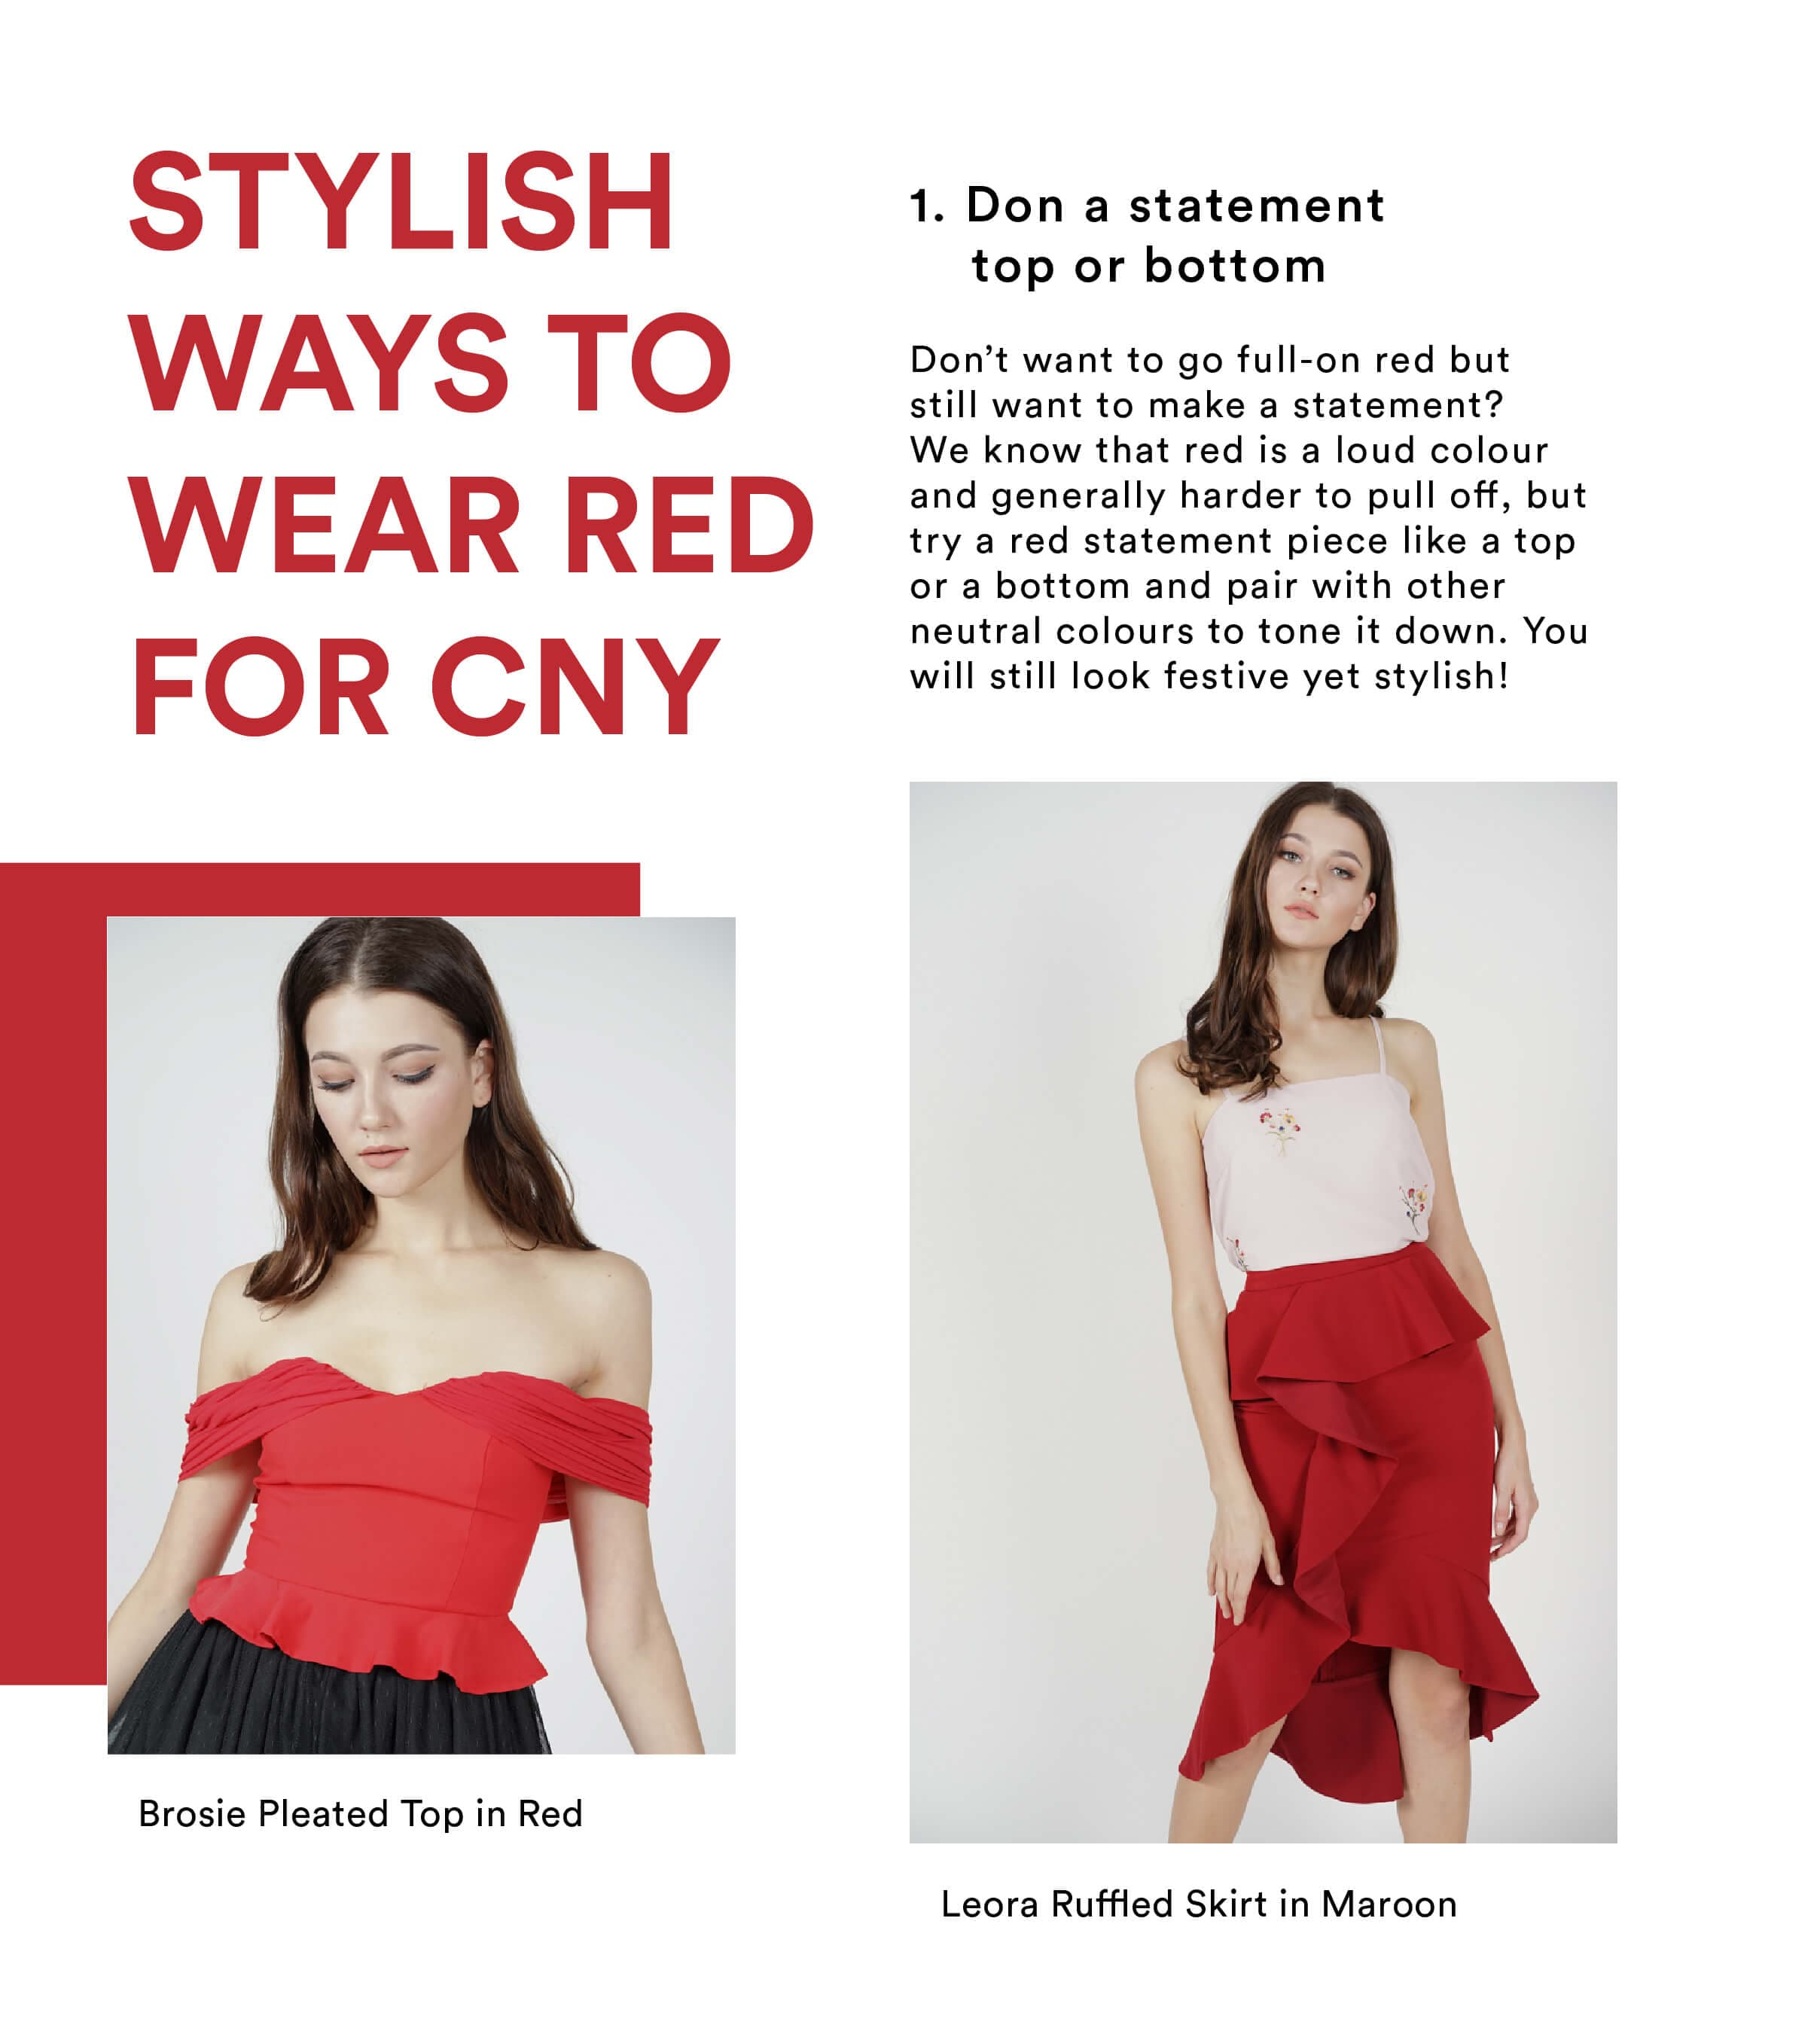 CNY Stylish Ways to Wear for CNY